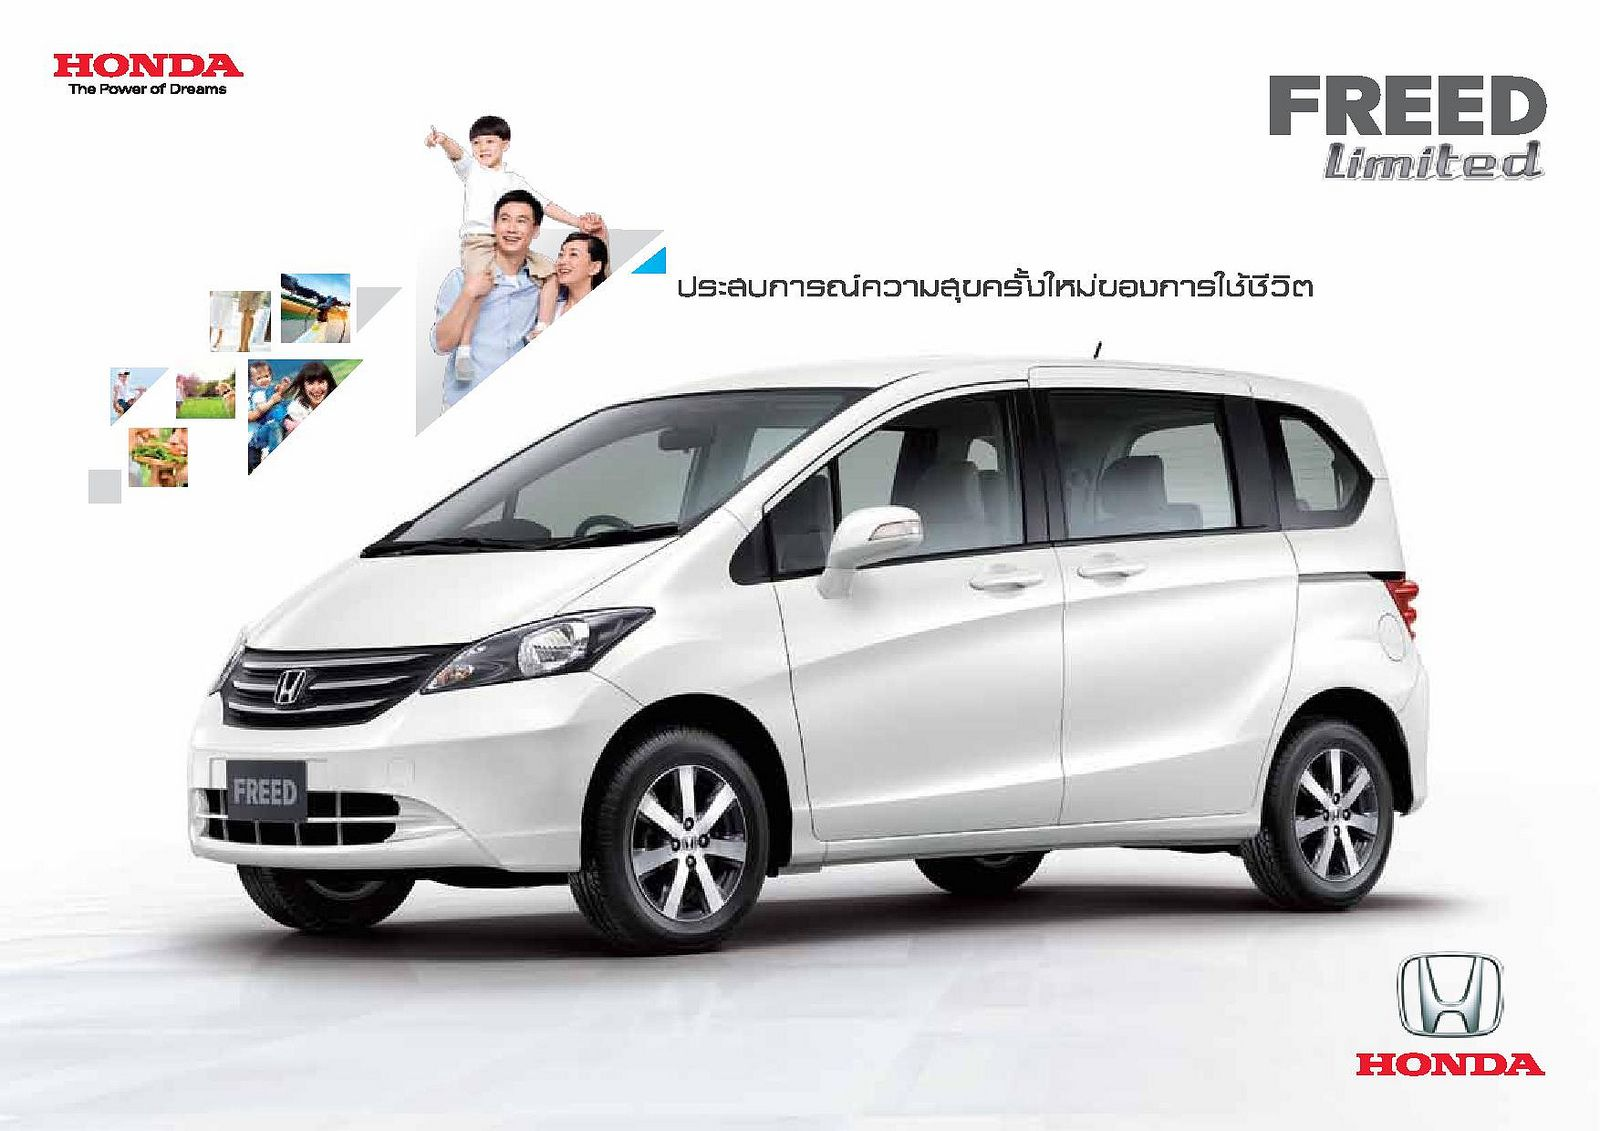 Honda freed limited thailand brochure 2012